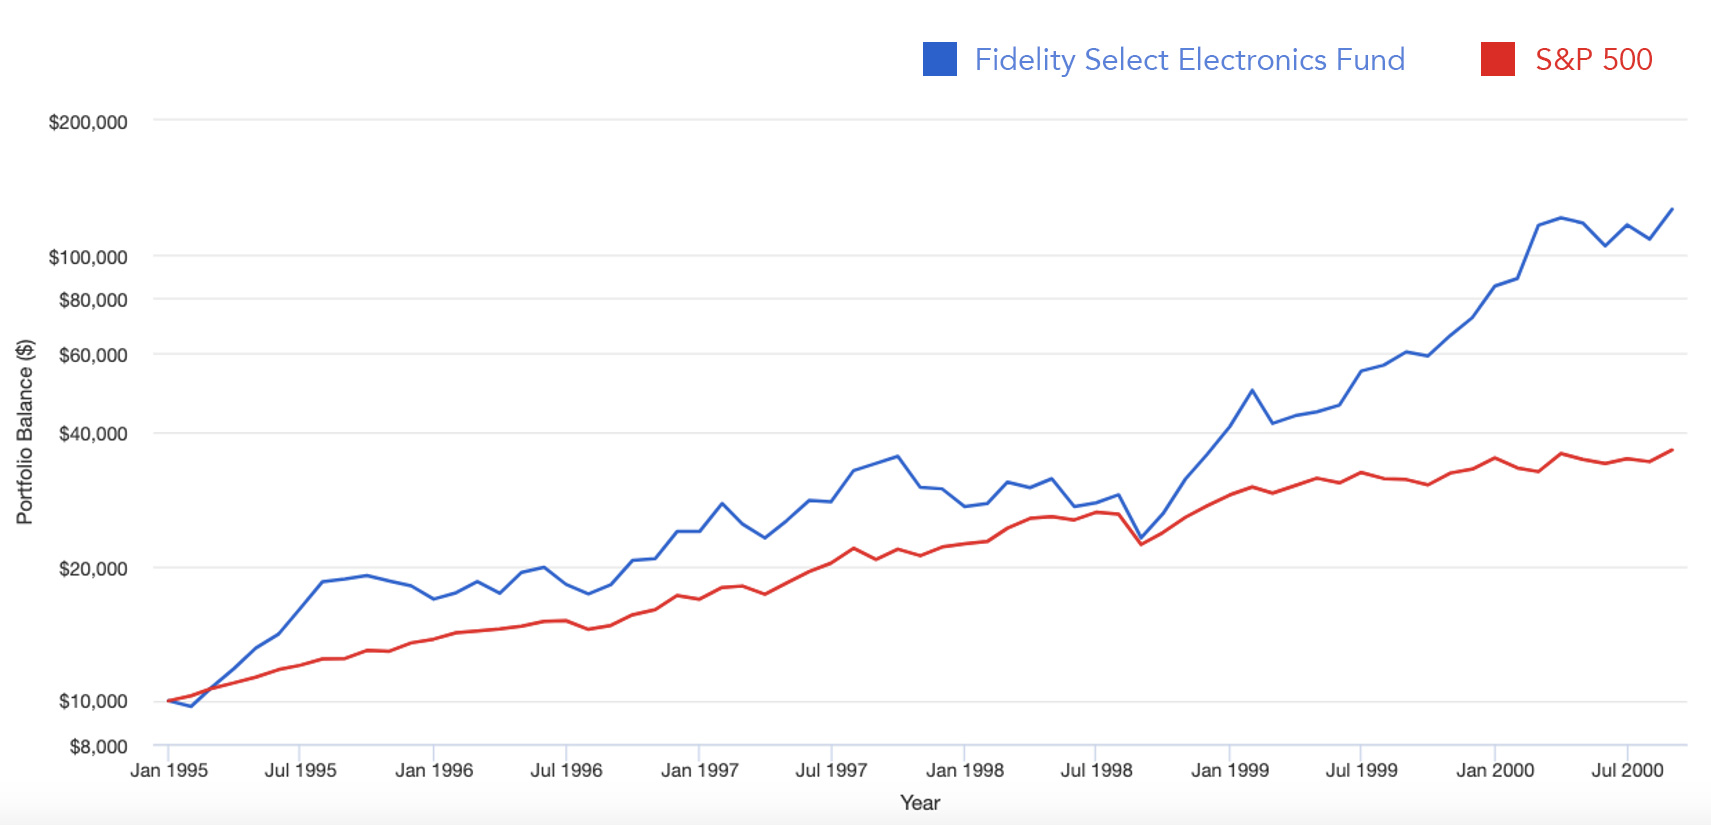 Fidelity Select Electronics Fund versus S&P 500